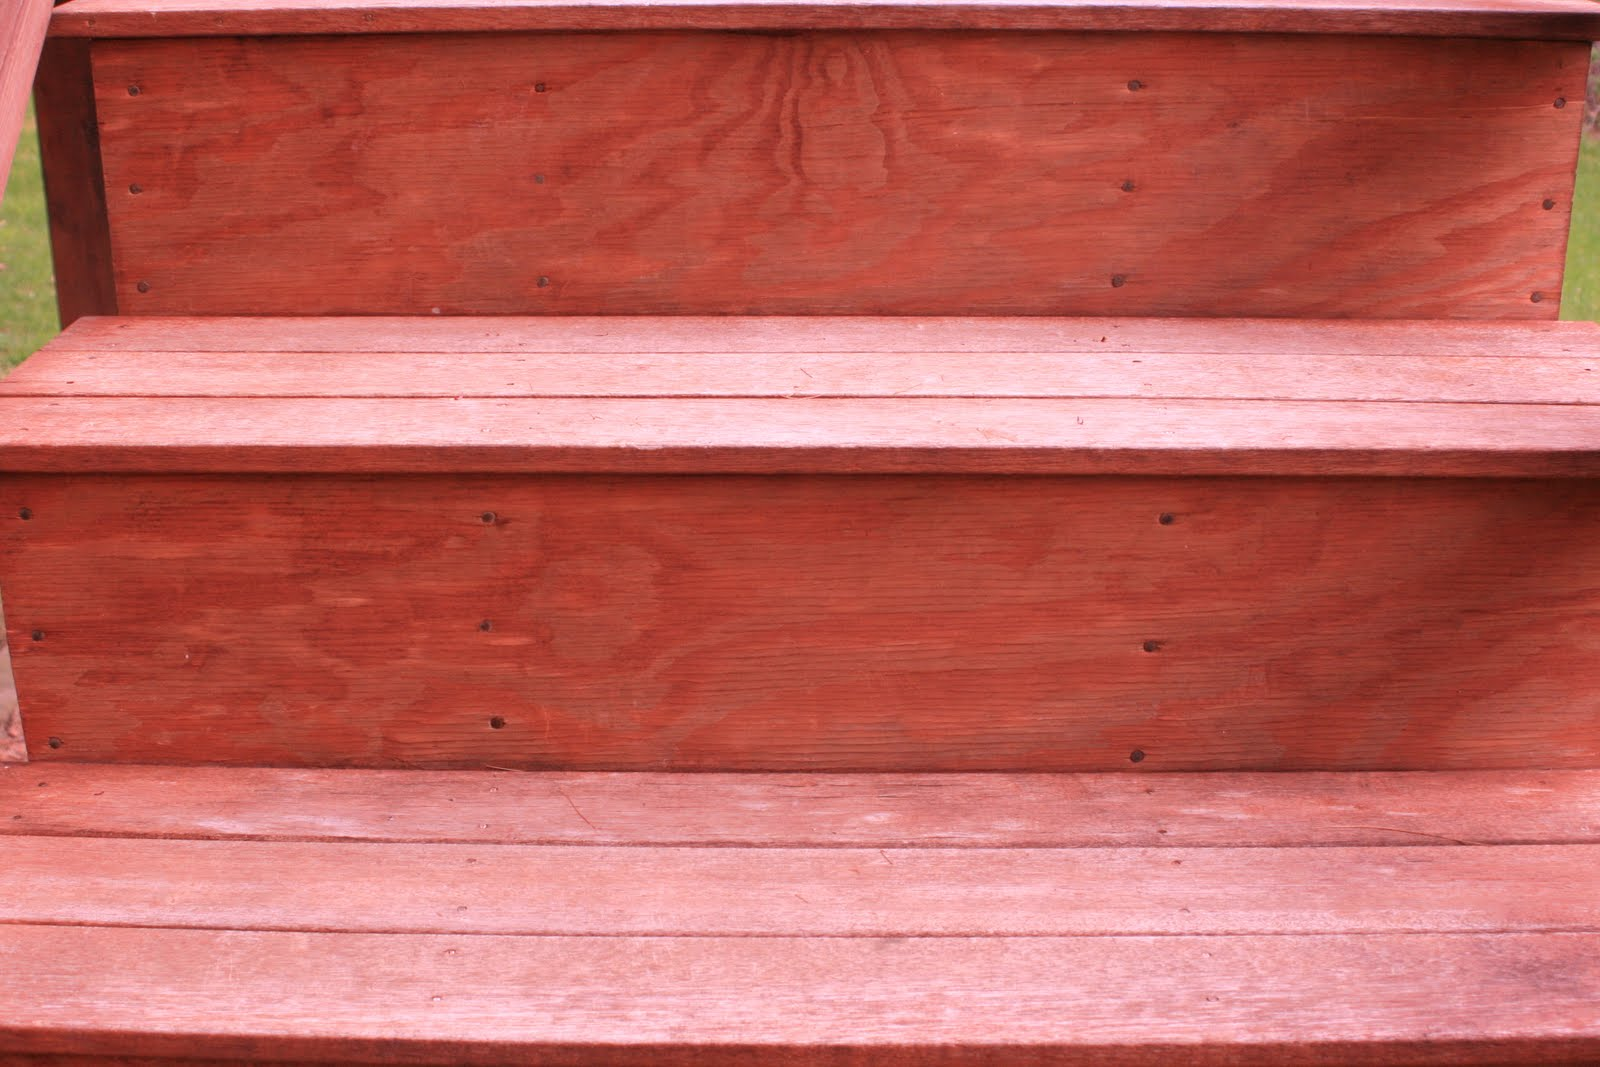 cleaned and stained the back deck stairs this weekend (I'm not a